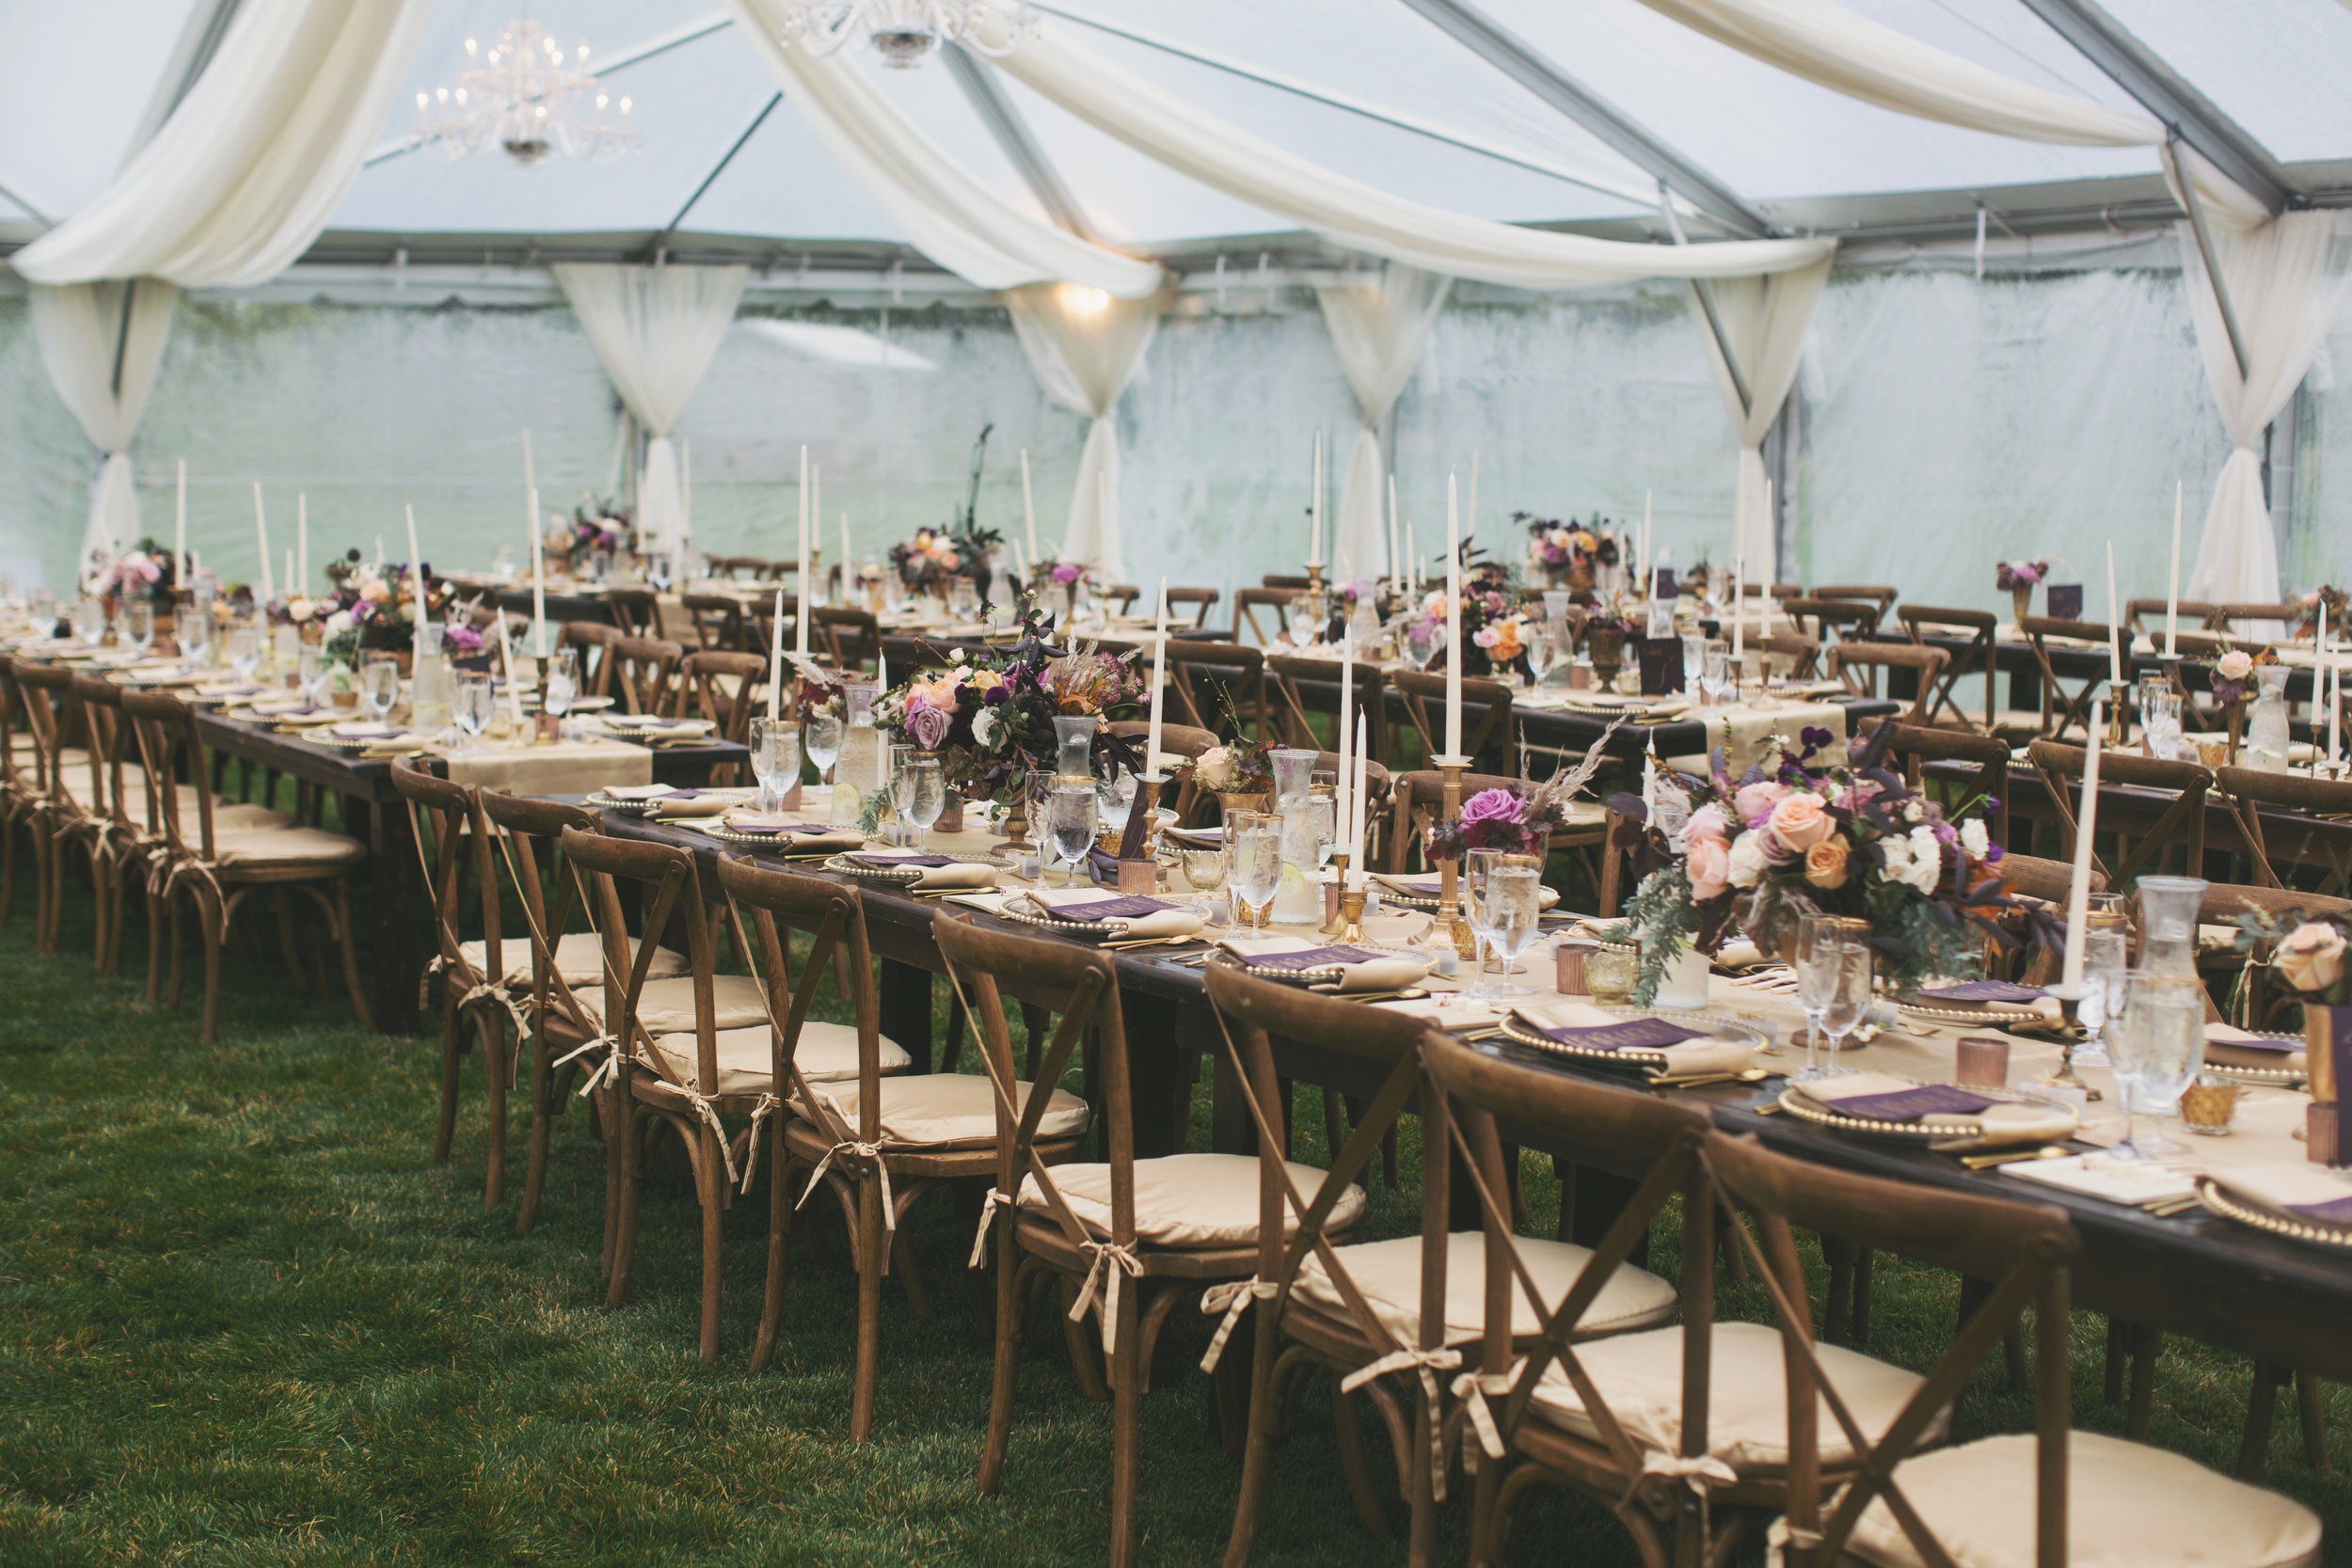 Plum and Gold Autumn Wedding | High Star Ranch Wedding | Rustic and Elegant Wedding | Michelle Leo Events | Utah Event Planner and Designer | Alixann Loosle Photography